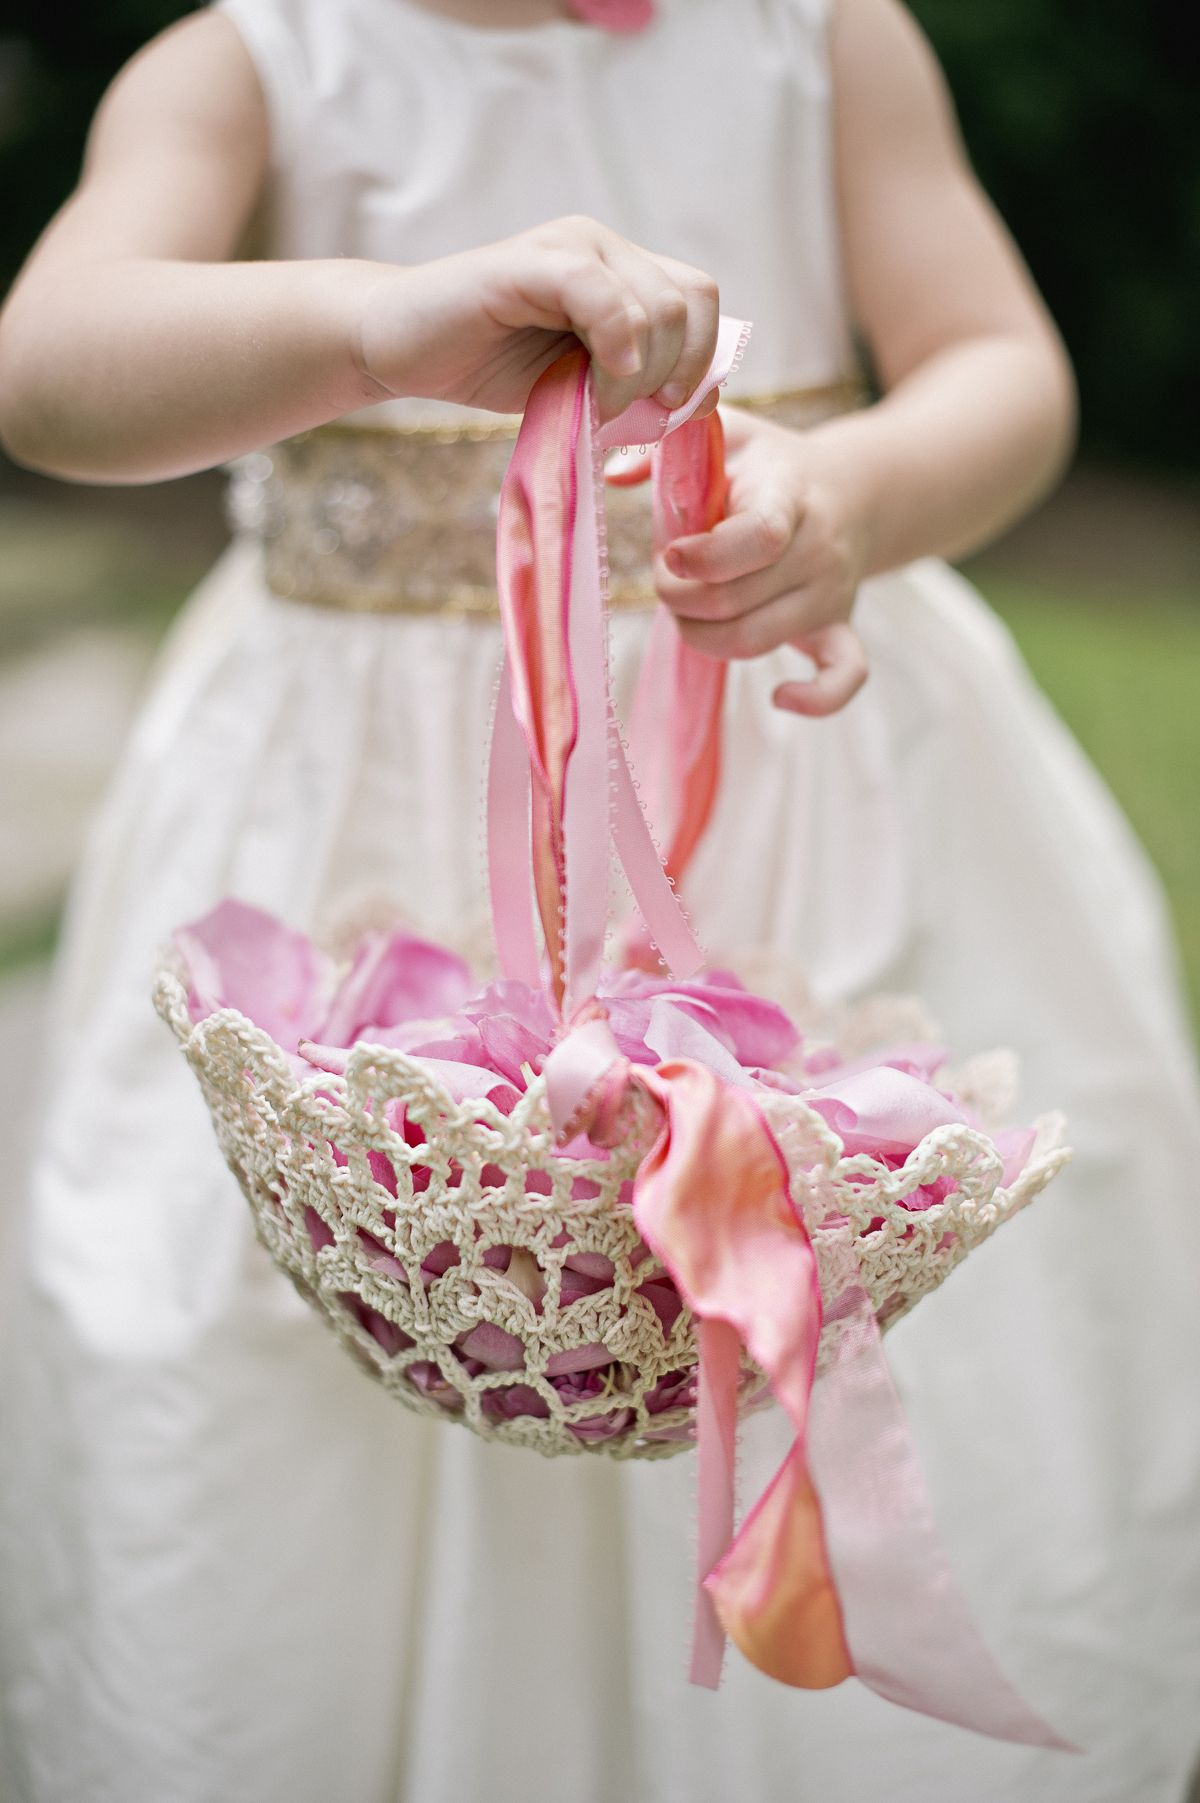 Kalen + Parks | Crochet, Flower girl basket and Flower